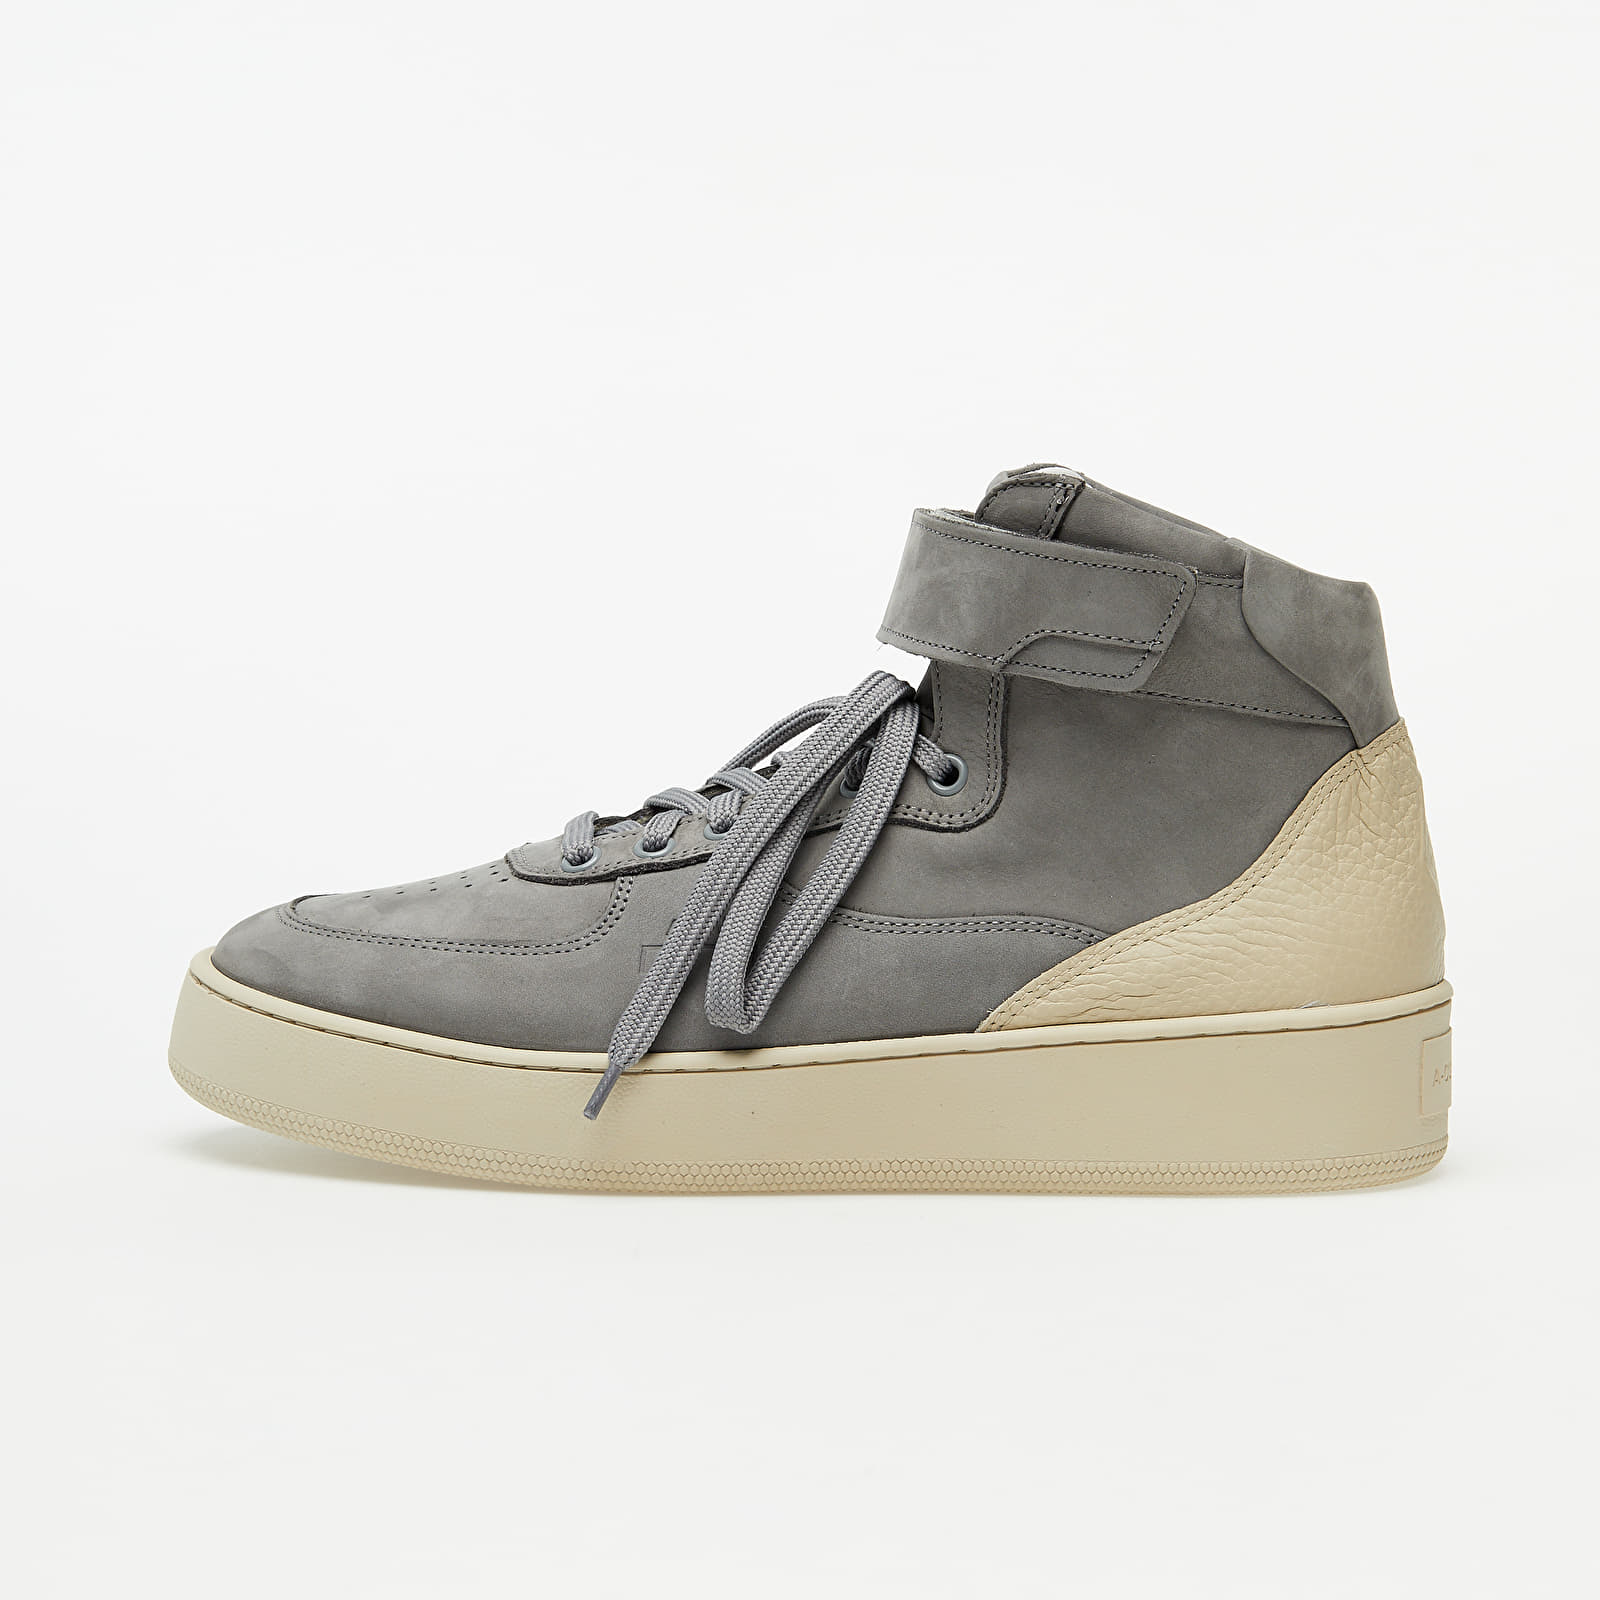 A-COLD-WALL* Rhombus Hi-Top Stone